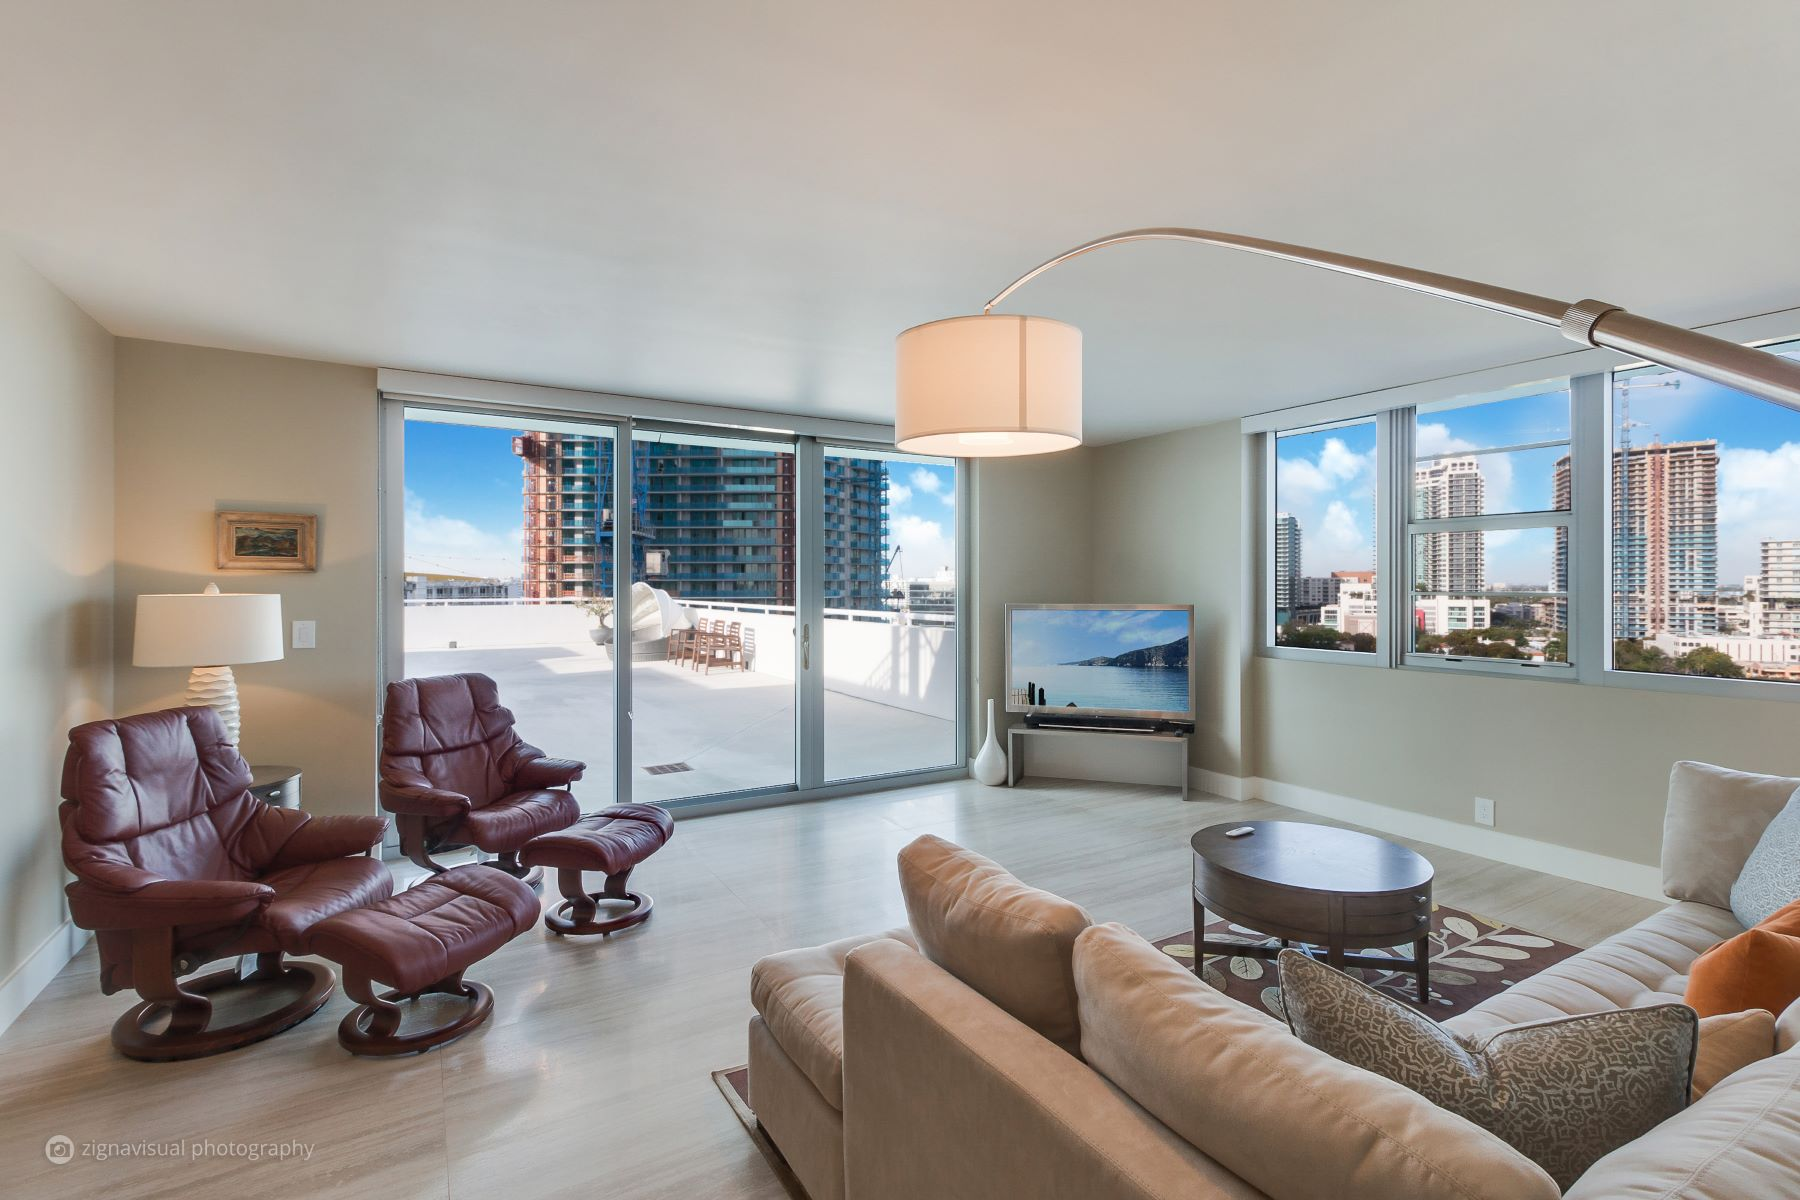 Condominium for Sale at 3301 Ne 5th Ave #Ph-1 3301 Ne 5th Ave PH-1 Miami, Florida, 33137 United States